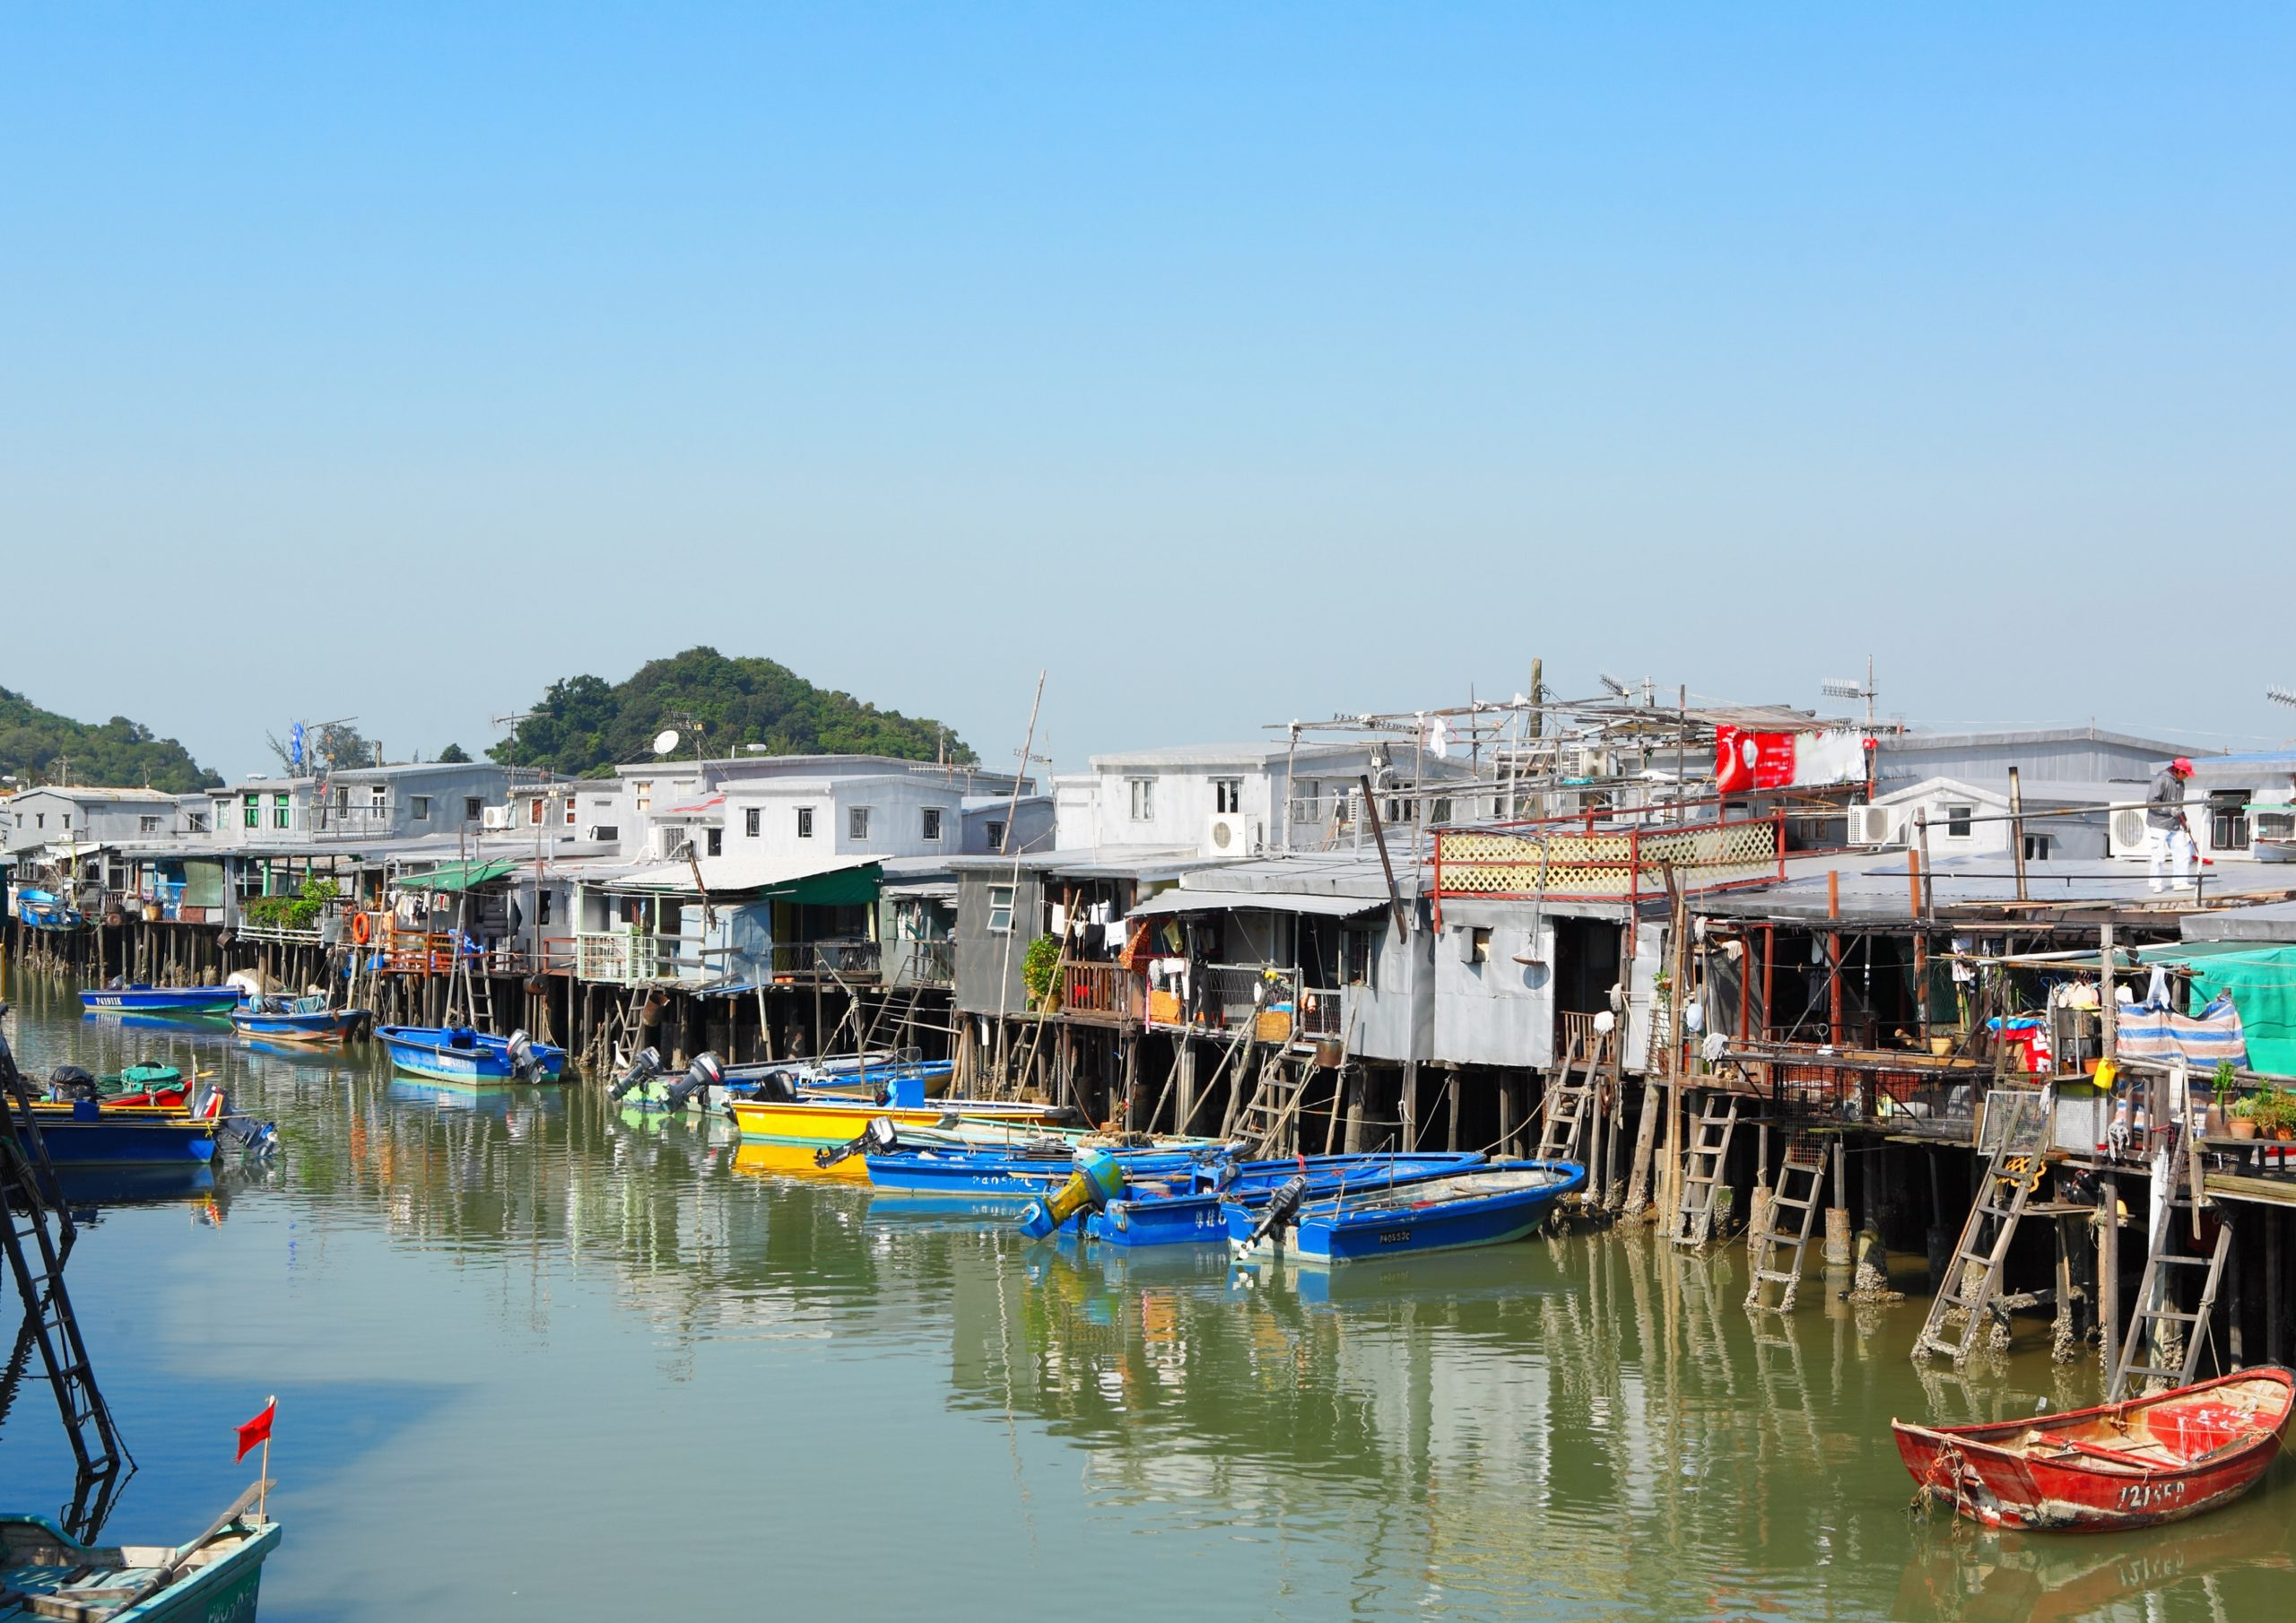 Spend your day and soak in the village's idyllic life, admire the traditional stilt-houses, and savour local treats